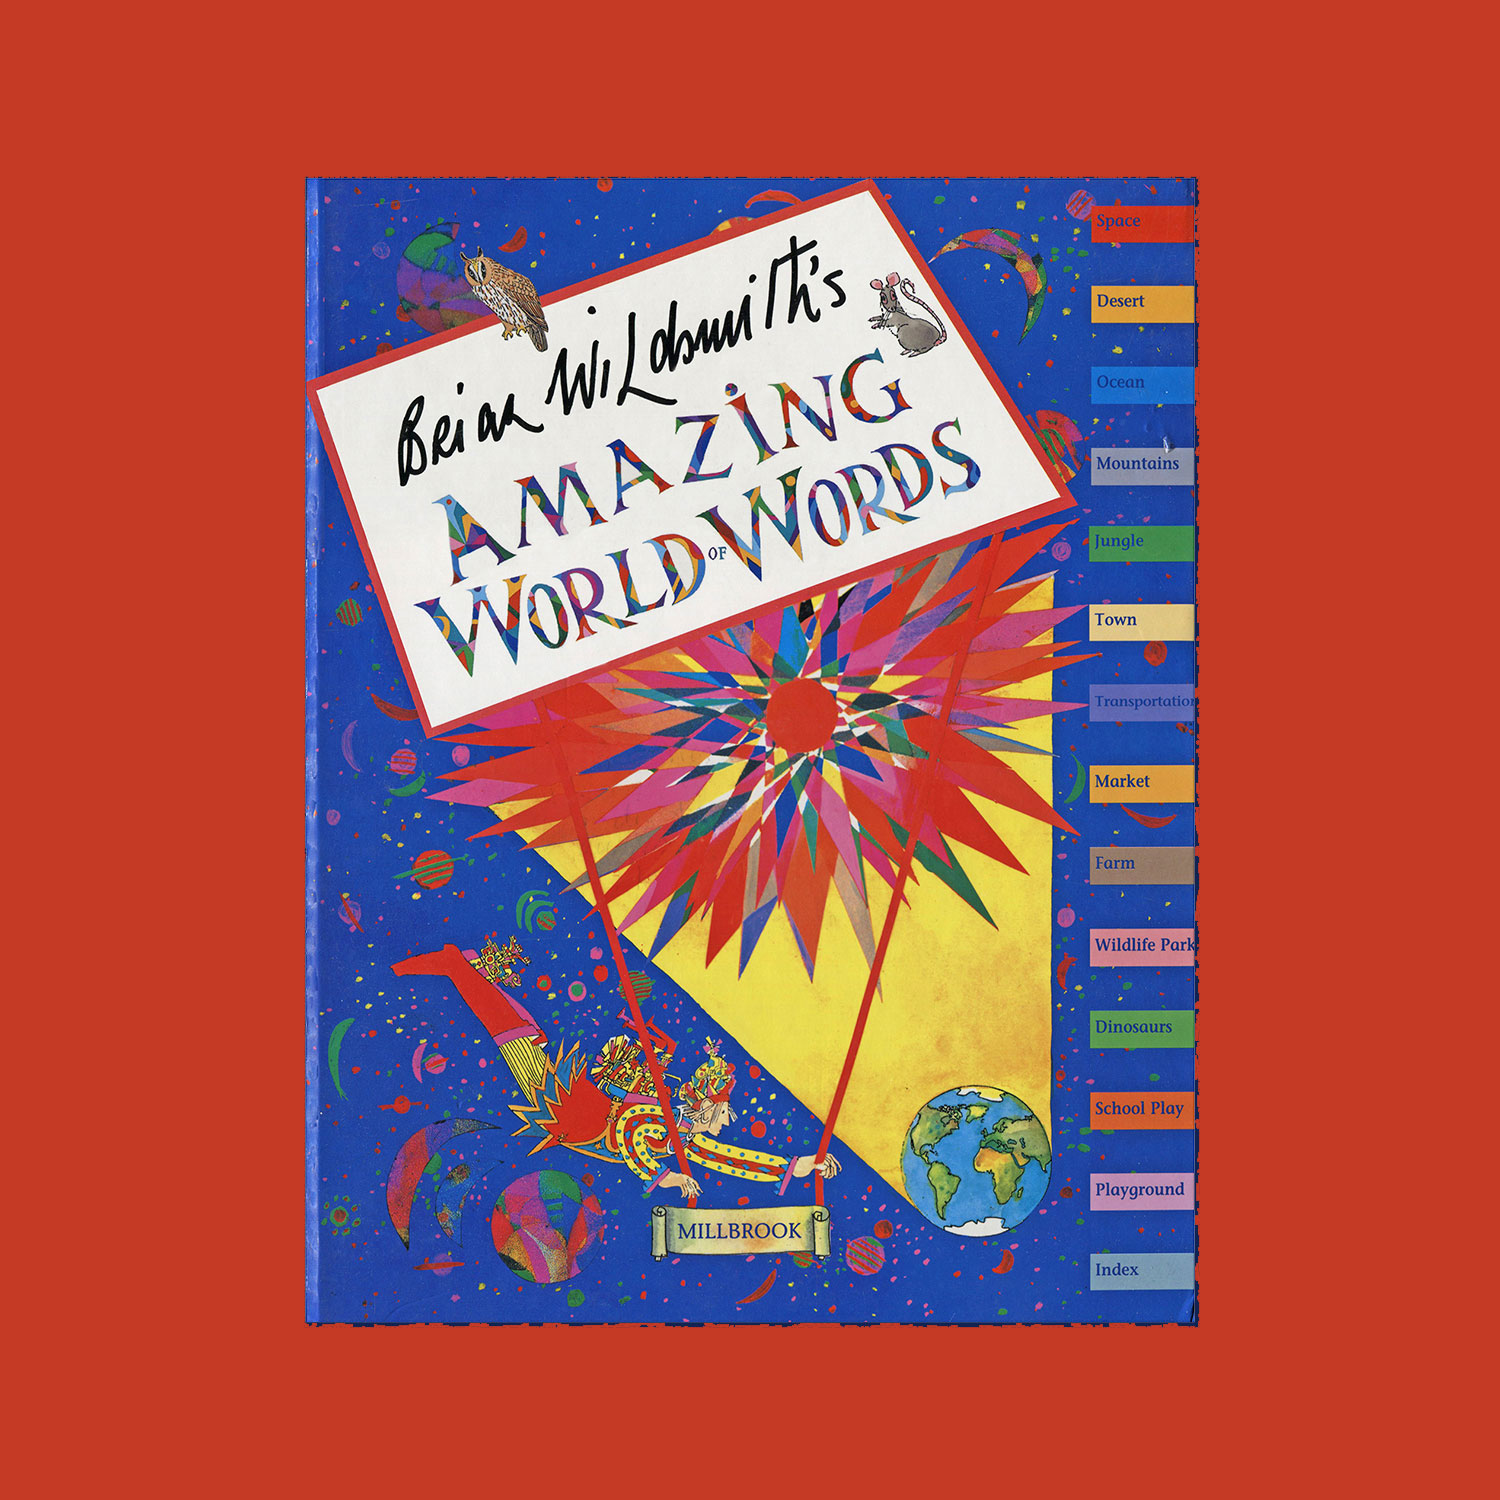 """AMAZING WORLD OF WORDS - 1997""""A visiting alien, clad rather like a court jester and travelling in an extravagant Jules Verne fantasy of a spaceship, is landing on earth and encountering for the first time its objects and creatures. Ten to twenty objects and animals are illustrated around the margins of gloriously coloured pen-and- ink drawings; every spread represents a different environment (space, ocean, town, market, dinosaur museum, playground..) and all in site viewers to locate the border subjects within the pictures… As usual with Wildsmith's work, the animals and birds are superb but there are also some extraordinary renderings of buildings and machines, many recycled from other of his books.""""Kirkus Reviews""""...Brian Wildsmith's Amazing World of Words may have changed the genre for good, bringing, as it does, the talents of one of Britain's leading artists to bear on it...exploding with colour and detail.""""Times Educational Supplement"""